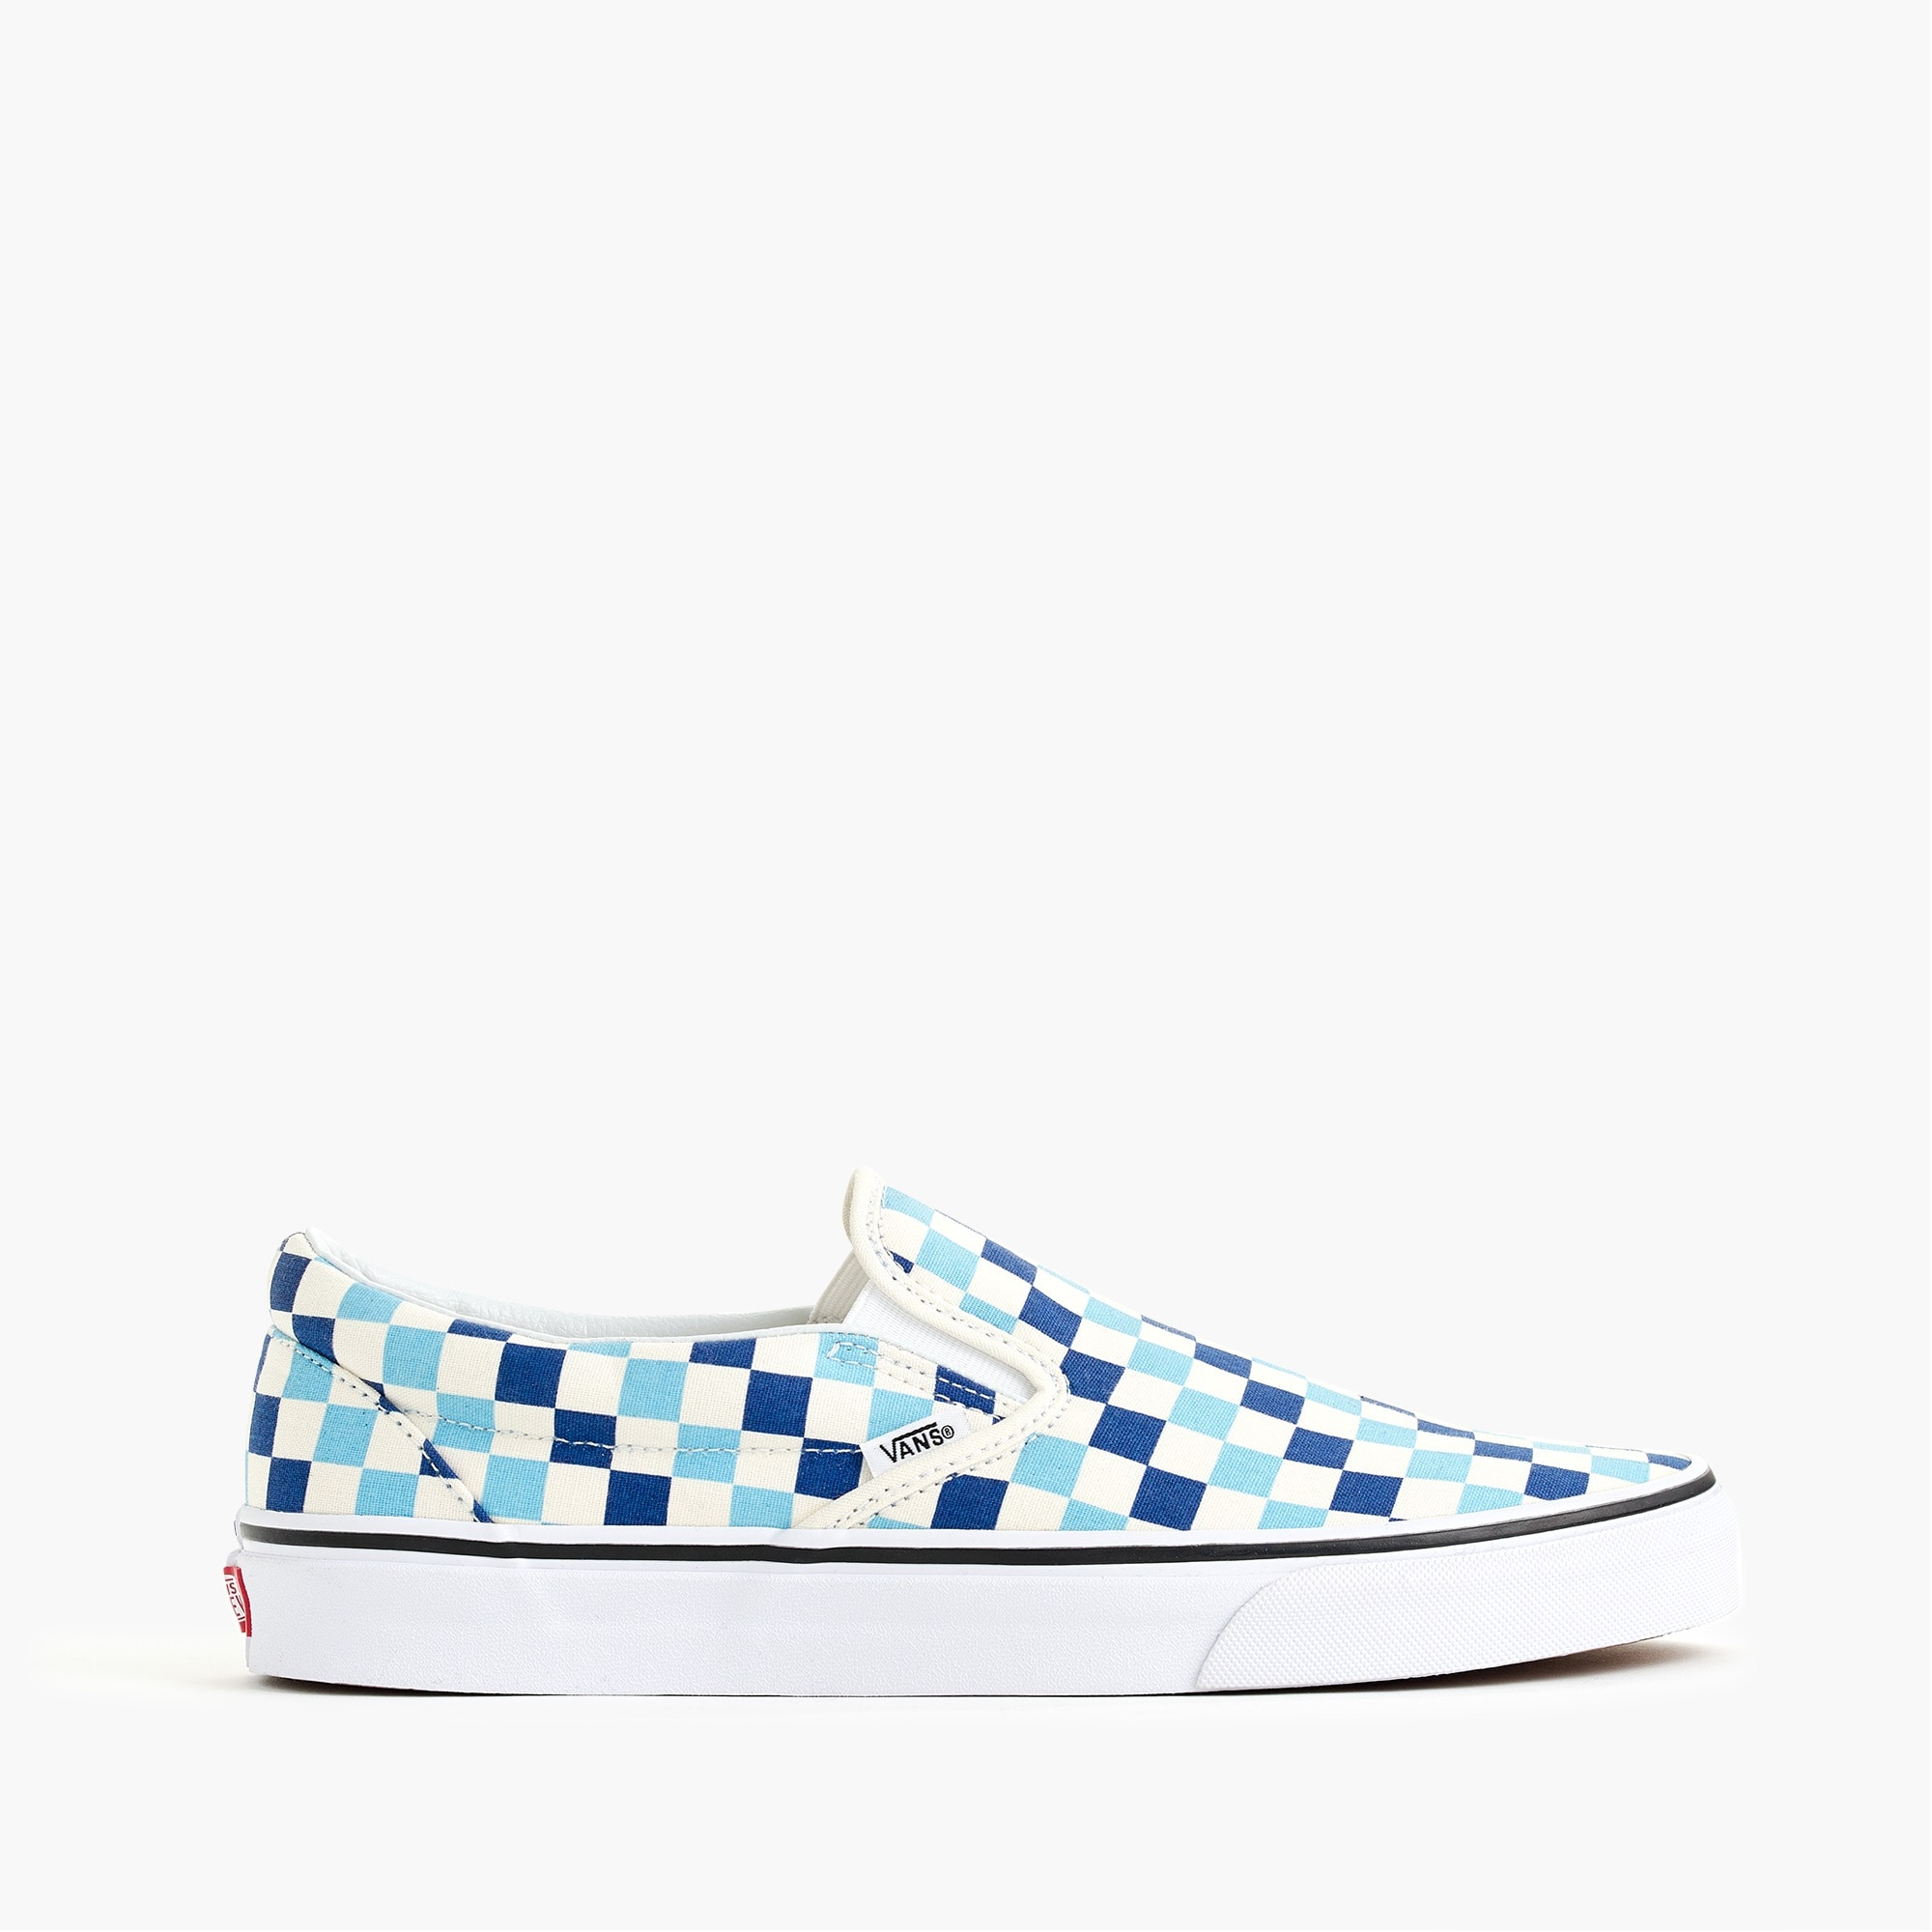 Image 1 for Vans® slip-on sneakers in blue checkerboard